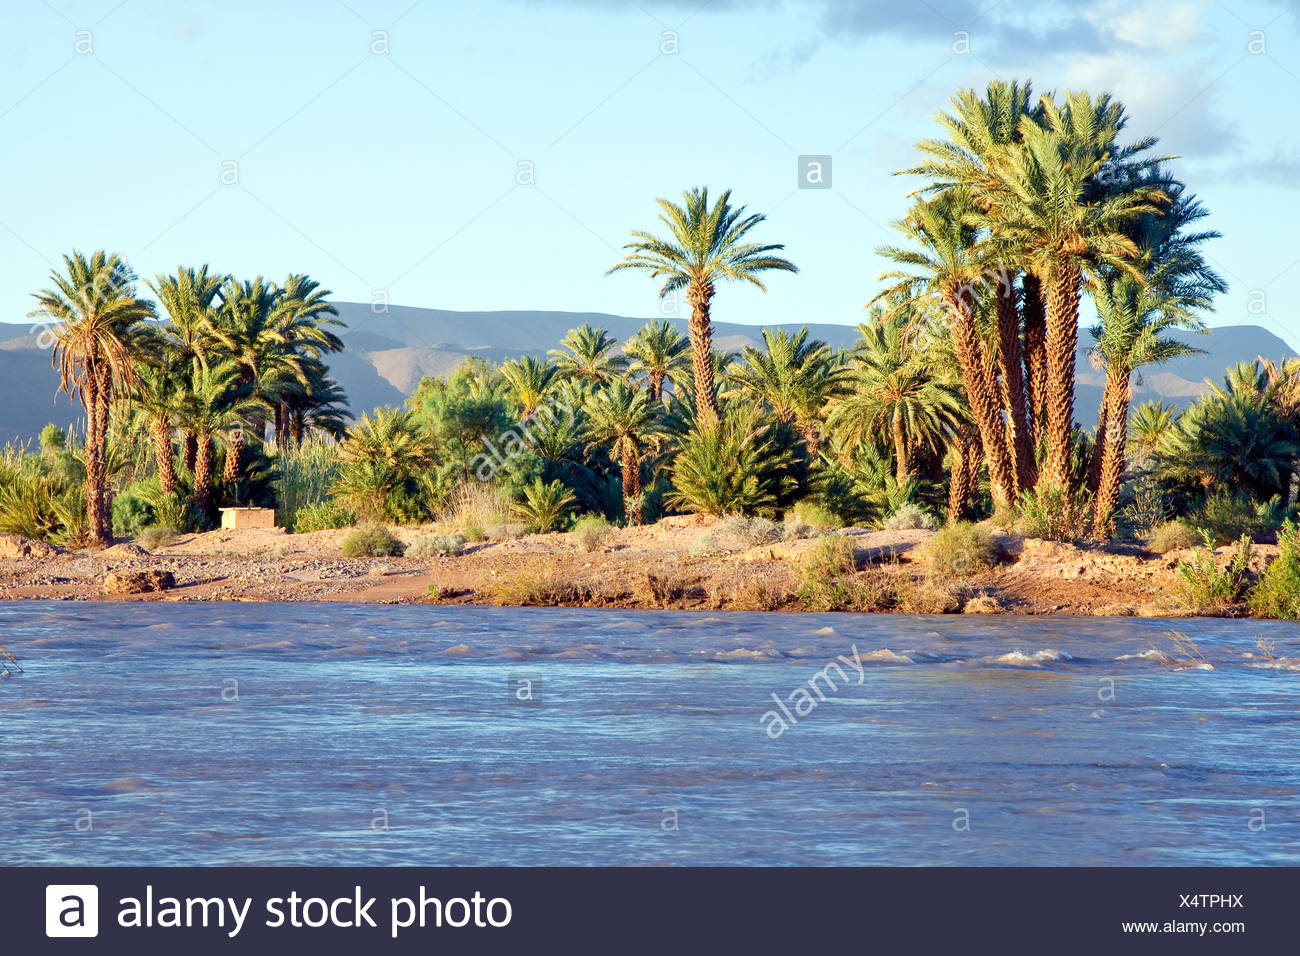 Palm trees on the riverbank of the Draa River, Draa valley, Agdz, Morocco, Africa - Stock Image